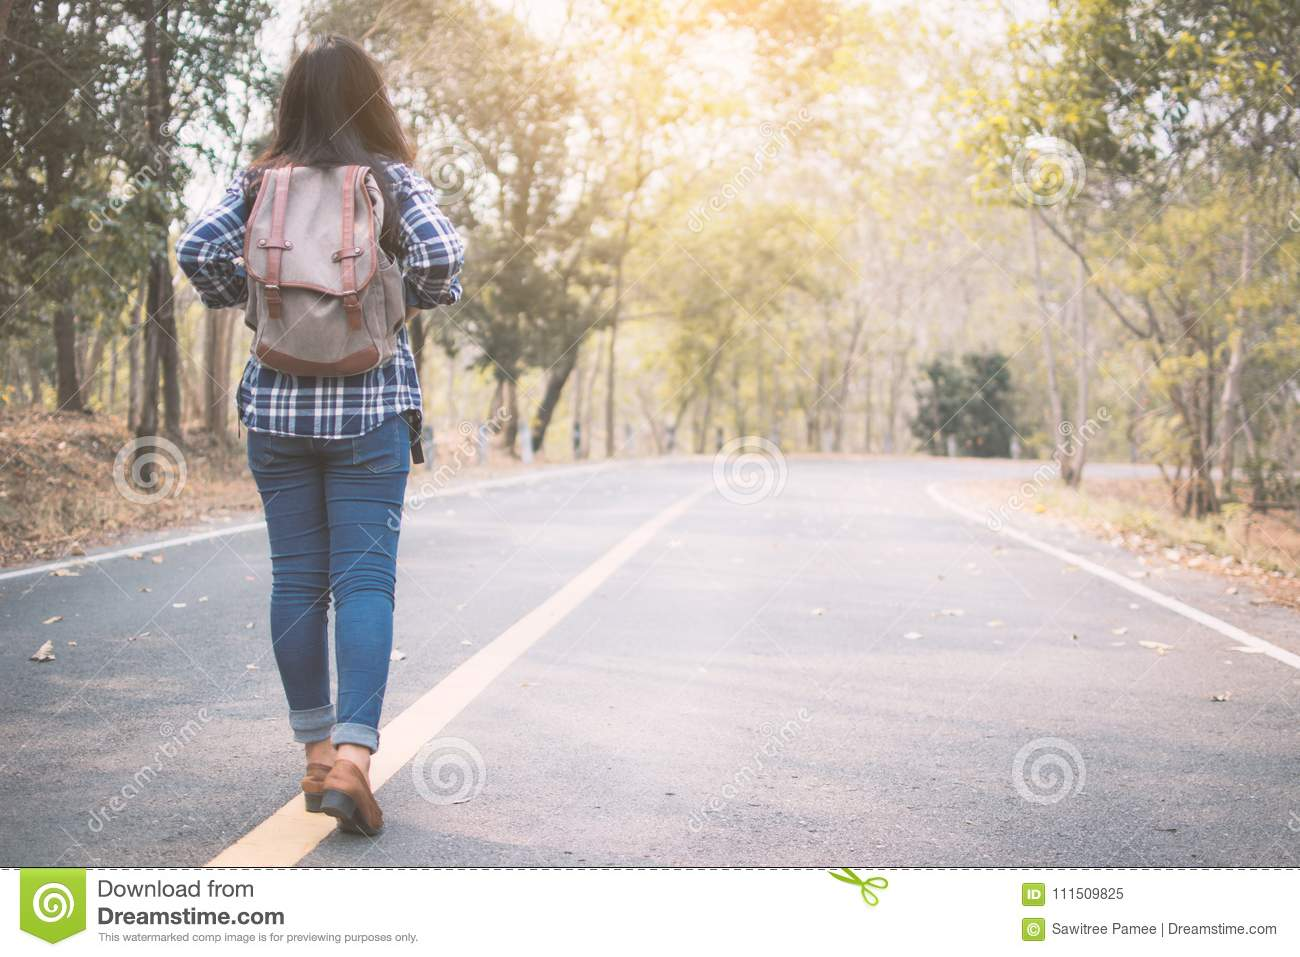 Happy Asian woman backpack in the road and forest background